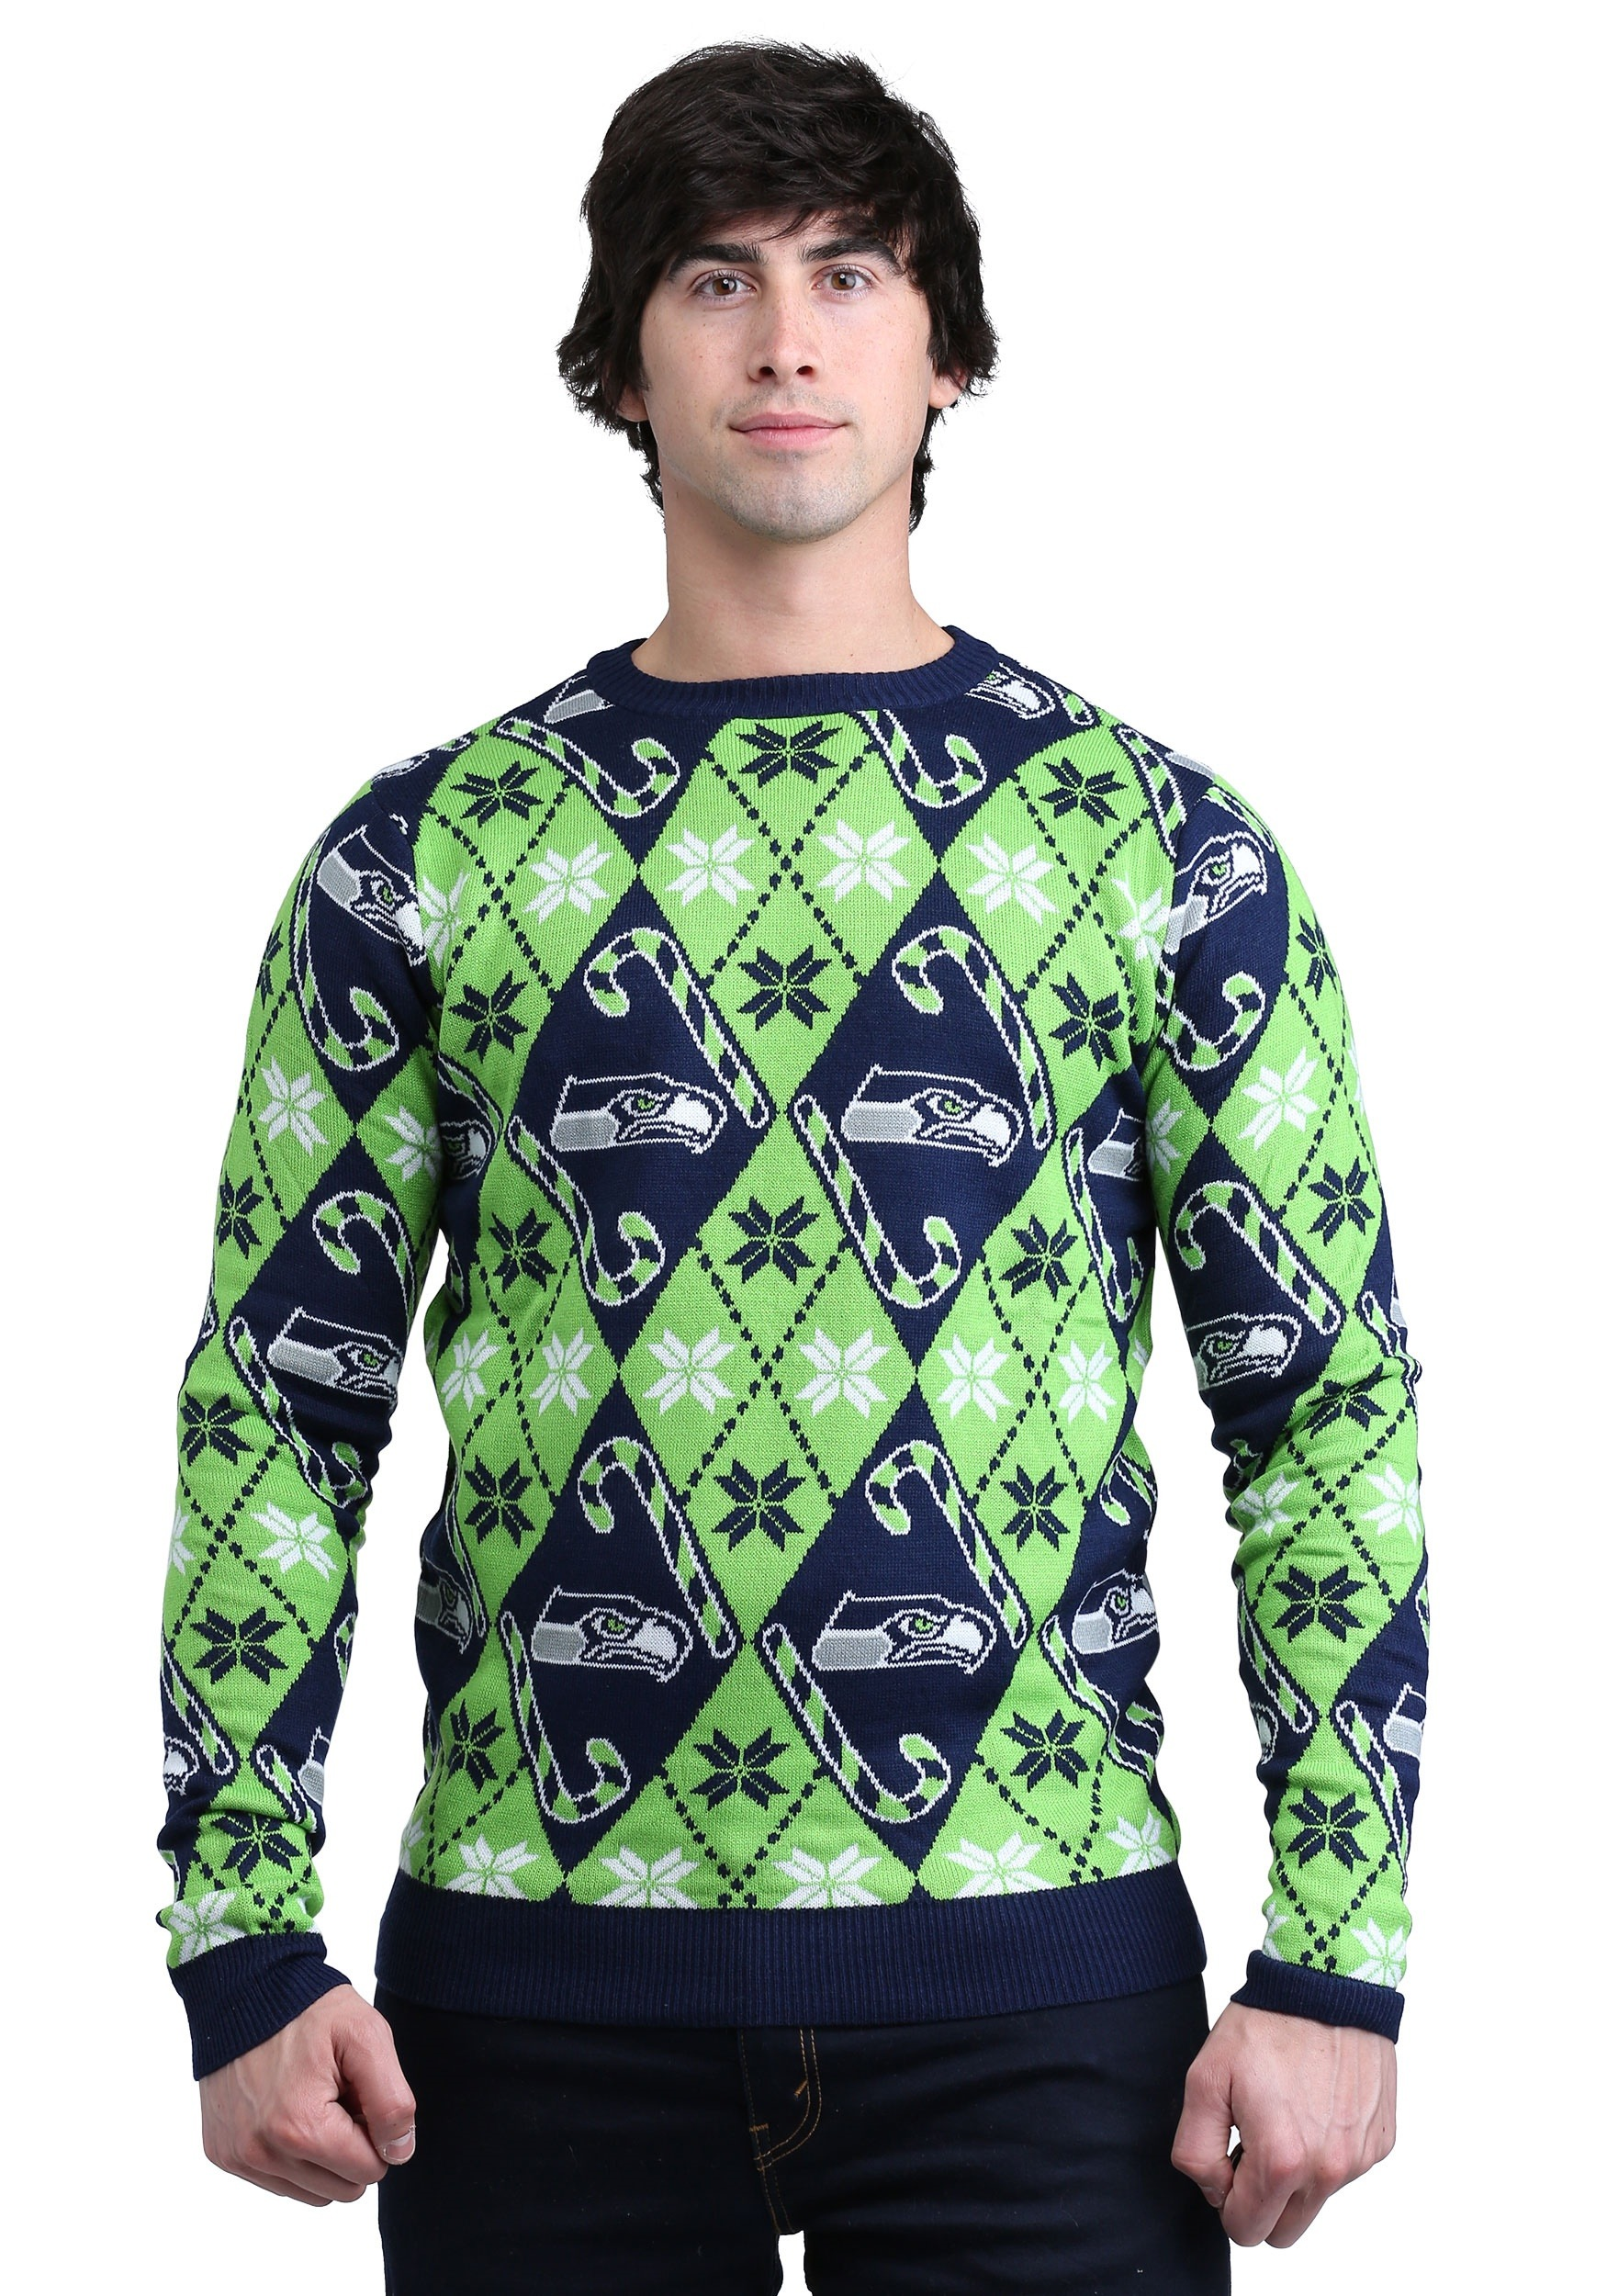 Seattle Seahawks Candy Cane Ugly Christmas Sweater